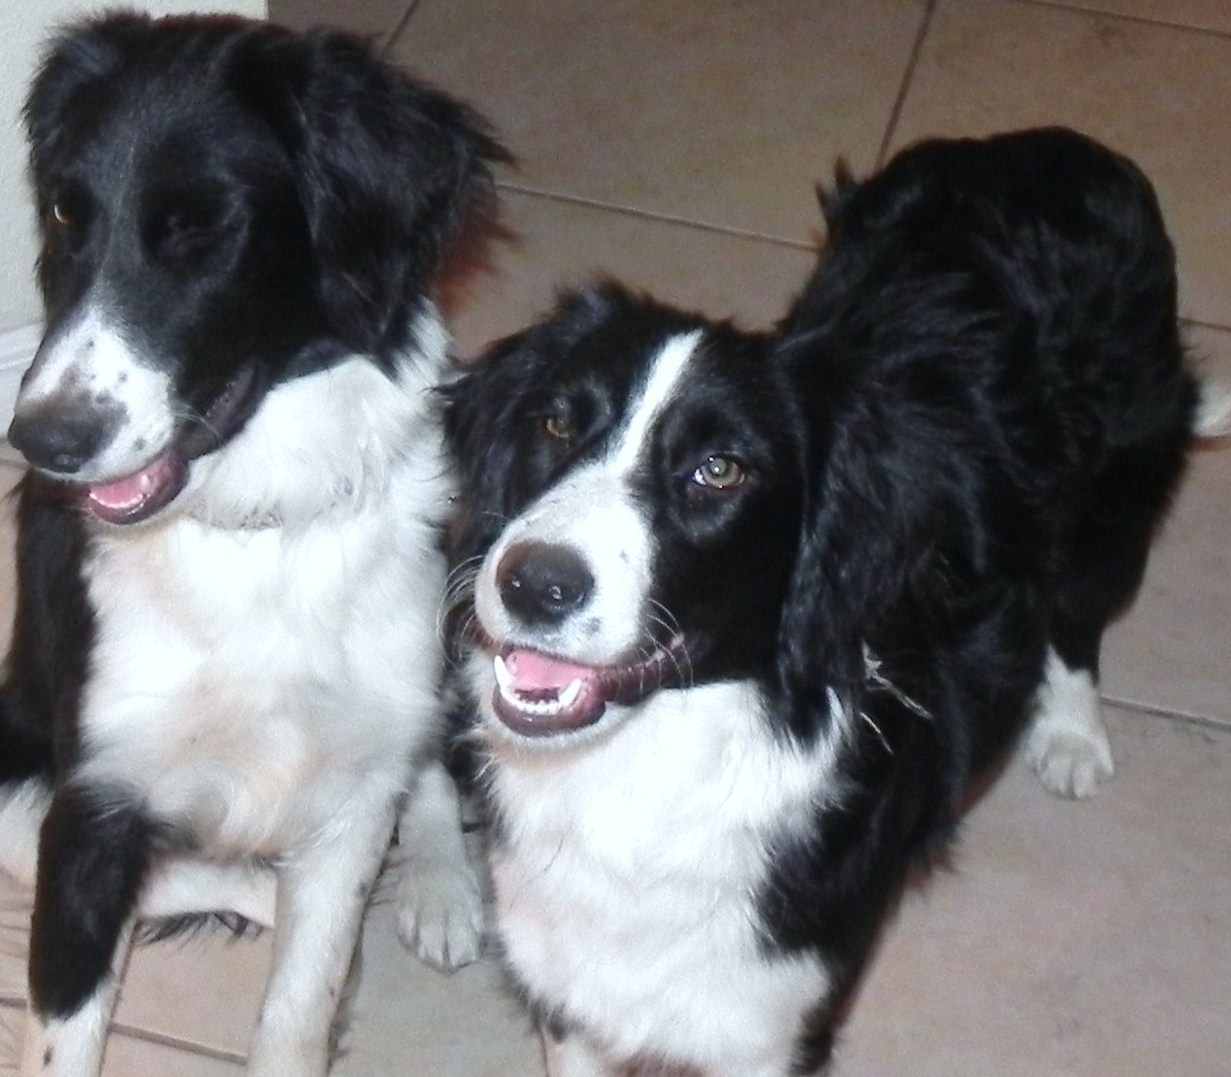 Angora and Cashmere – The Petite Border Collie Sisters ~ ADOPTED!